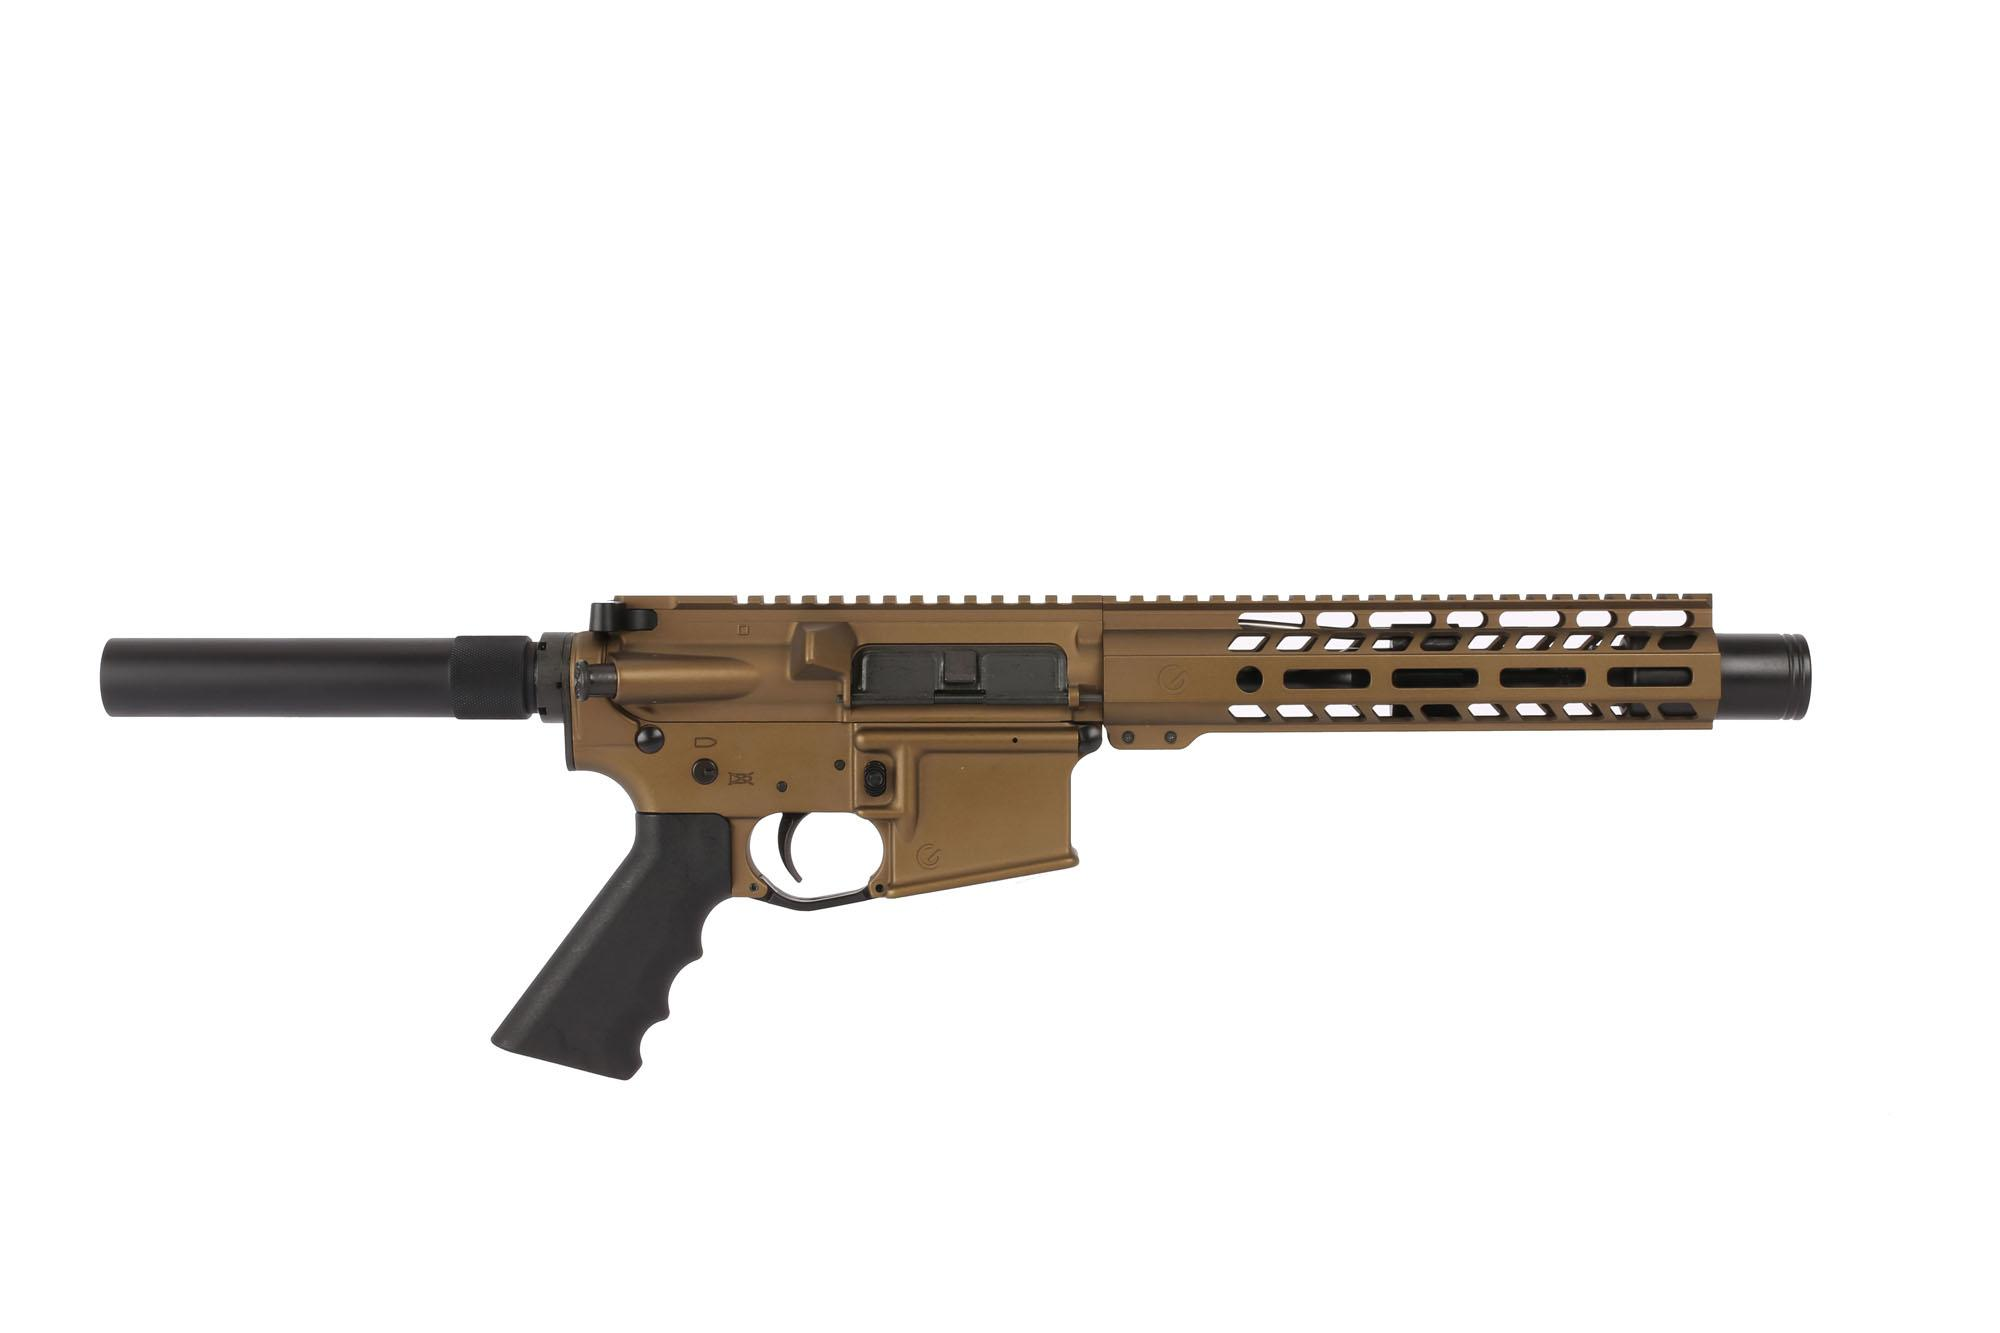 Ghost Firearms 7.5in 5.56 NATO 1:7 Carbine Length AR-15 Pistol with Flash Can - Burnt Bronze Cerakote